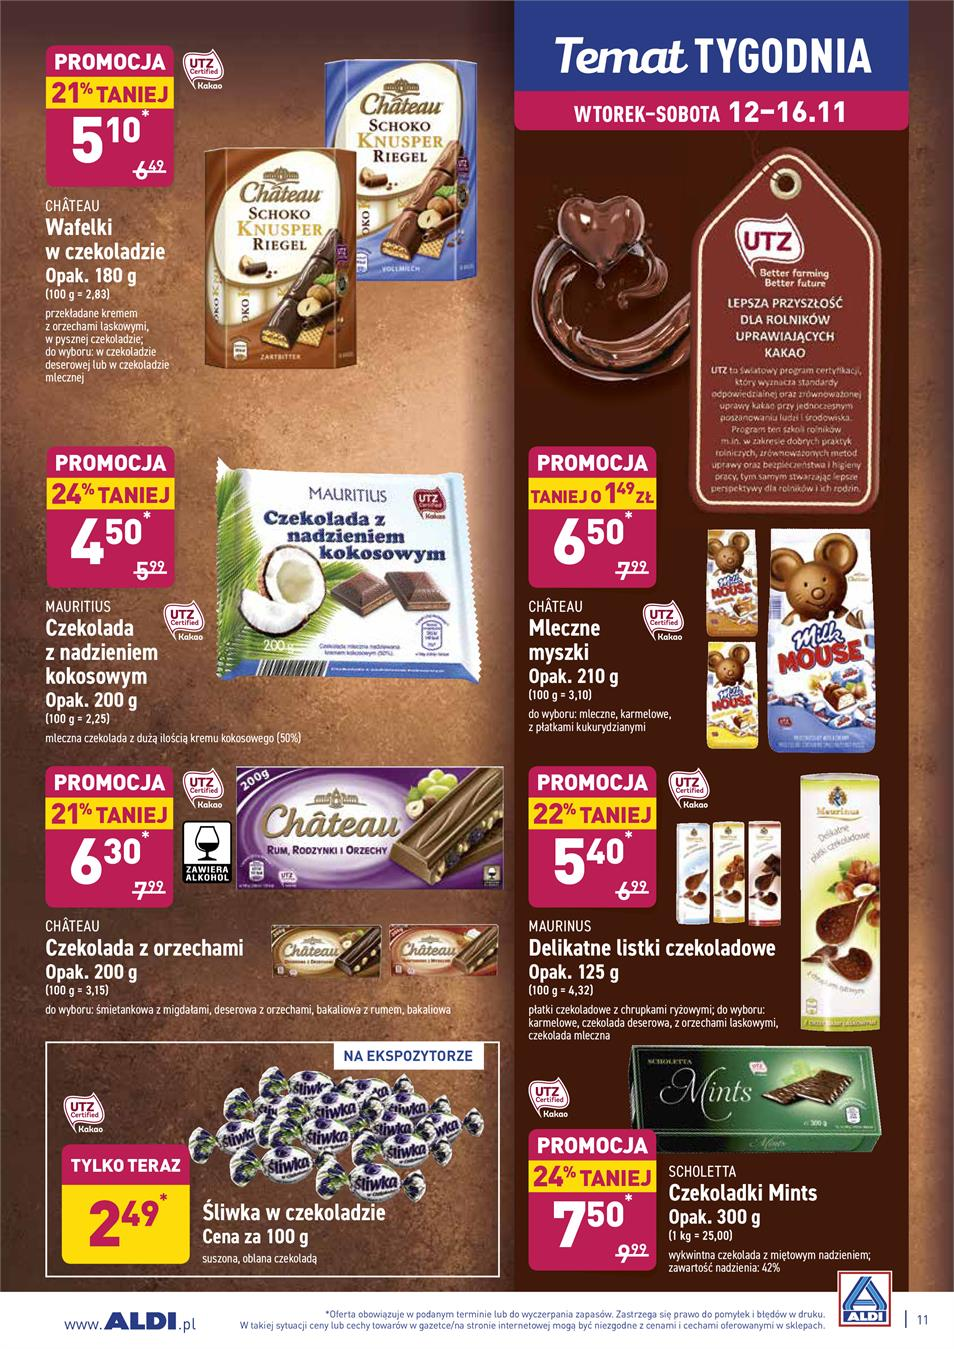 Gazetka ALDI SP Z O O  nr 11 od 2019-11-12 do 2019-11-16